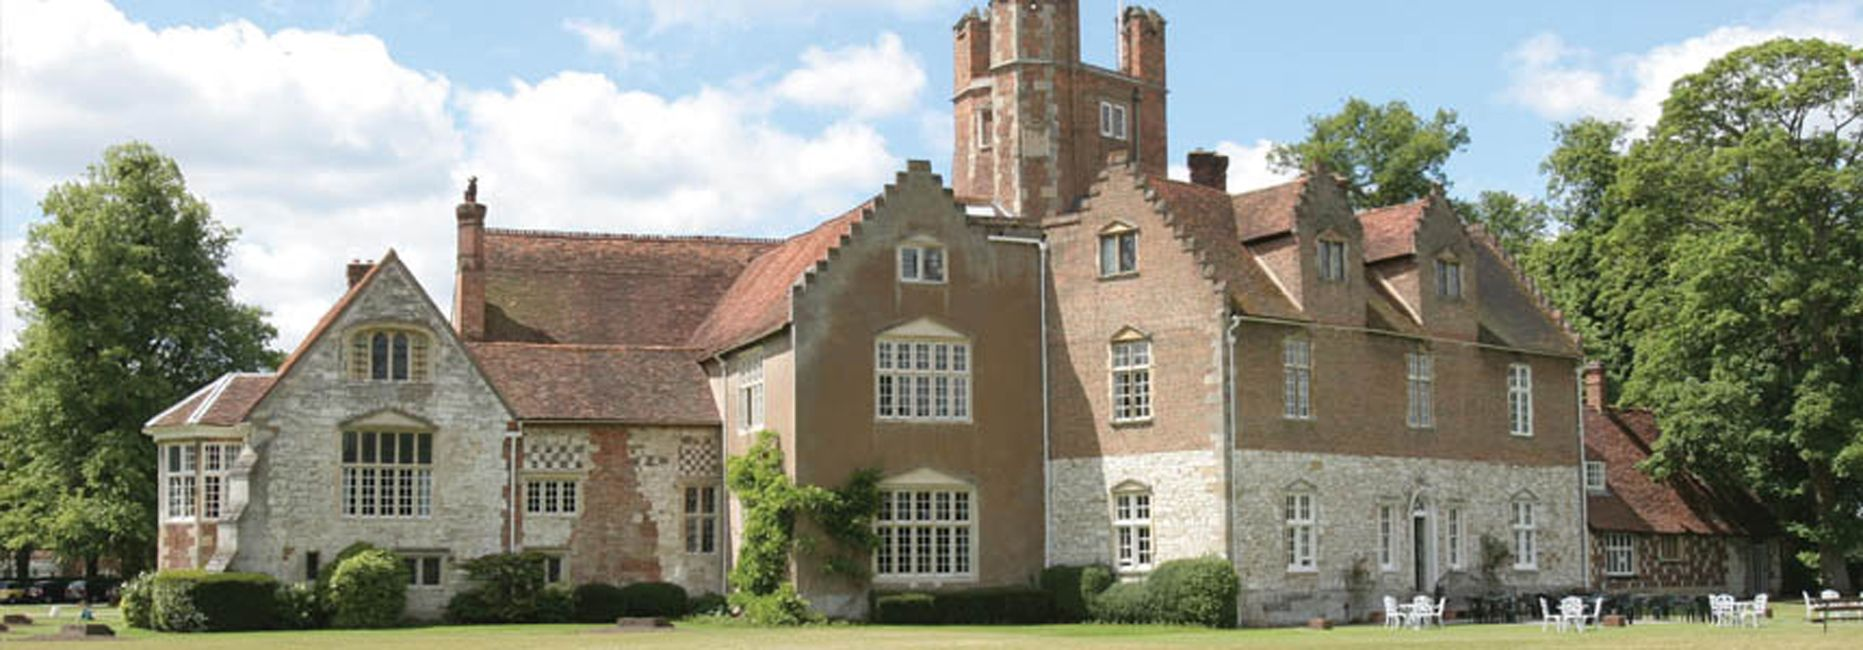 Bisham Abbey Is A Grade I Listed Manor House Near Marlow Beautiful Wedding Venue